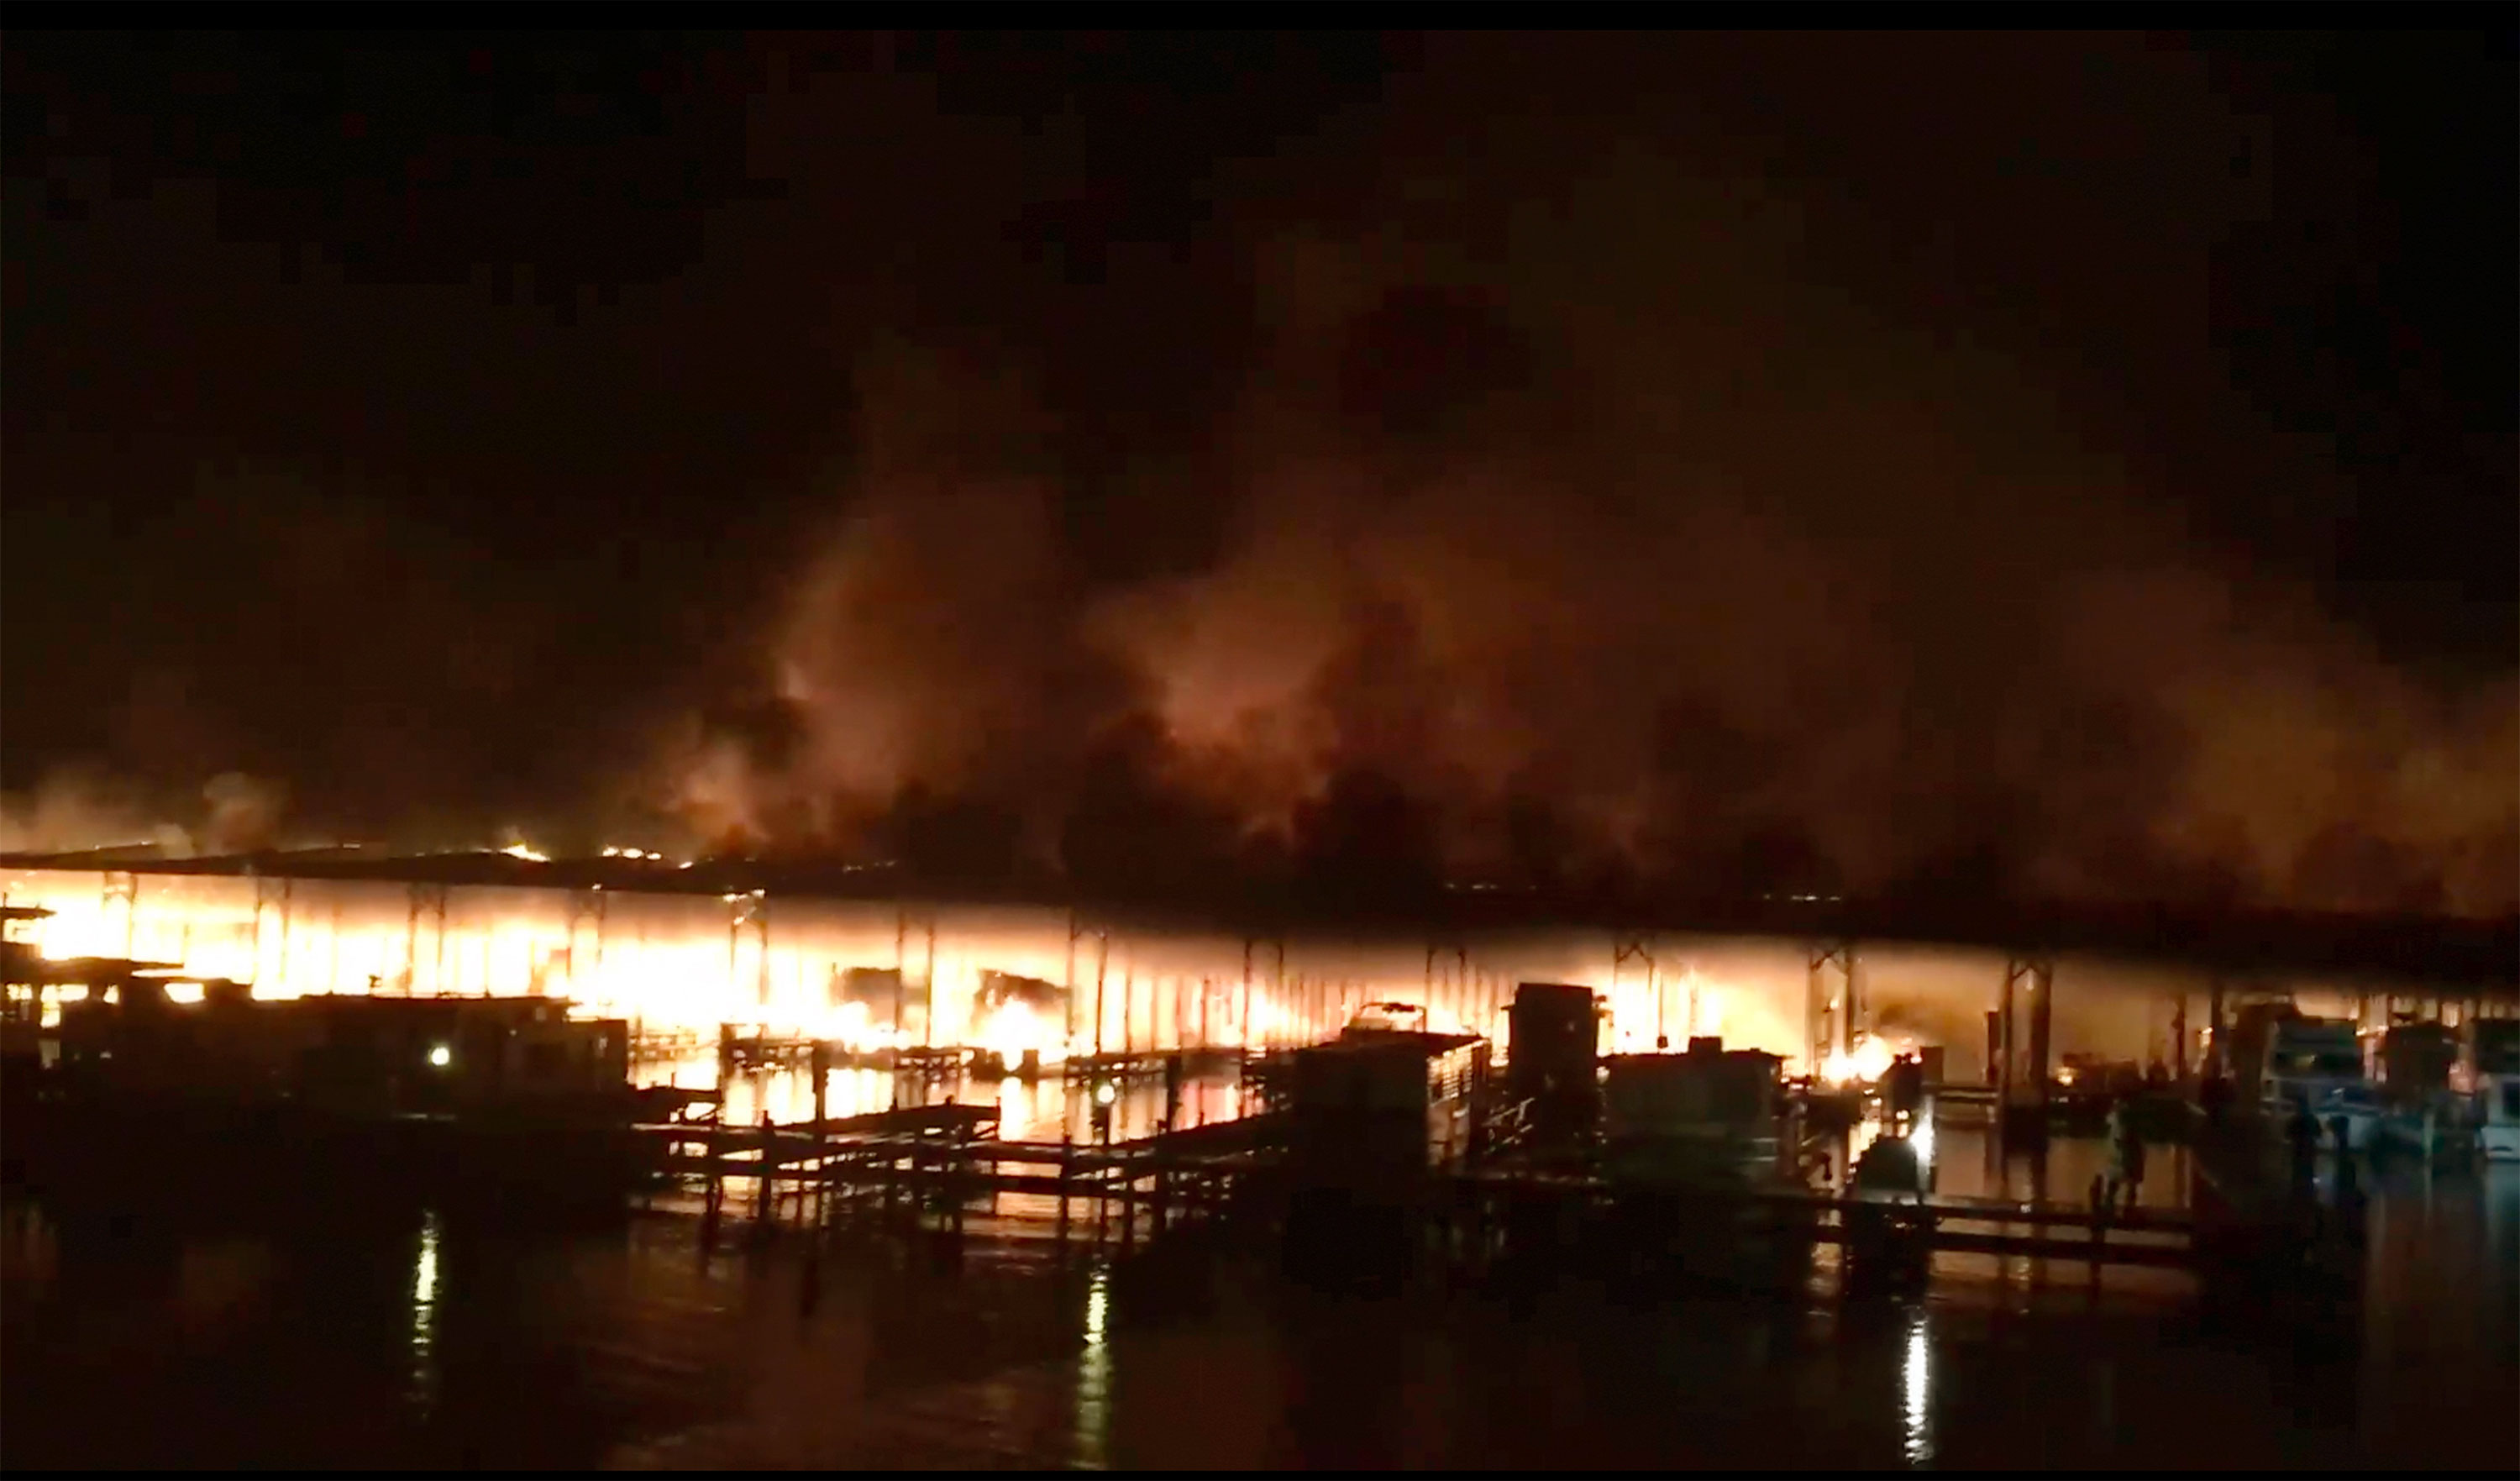 Alabama boat dock fire: Four of the 8 who died were children, authorities say